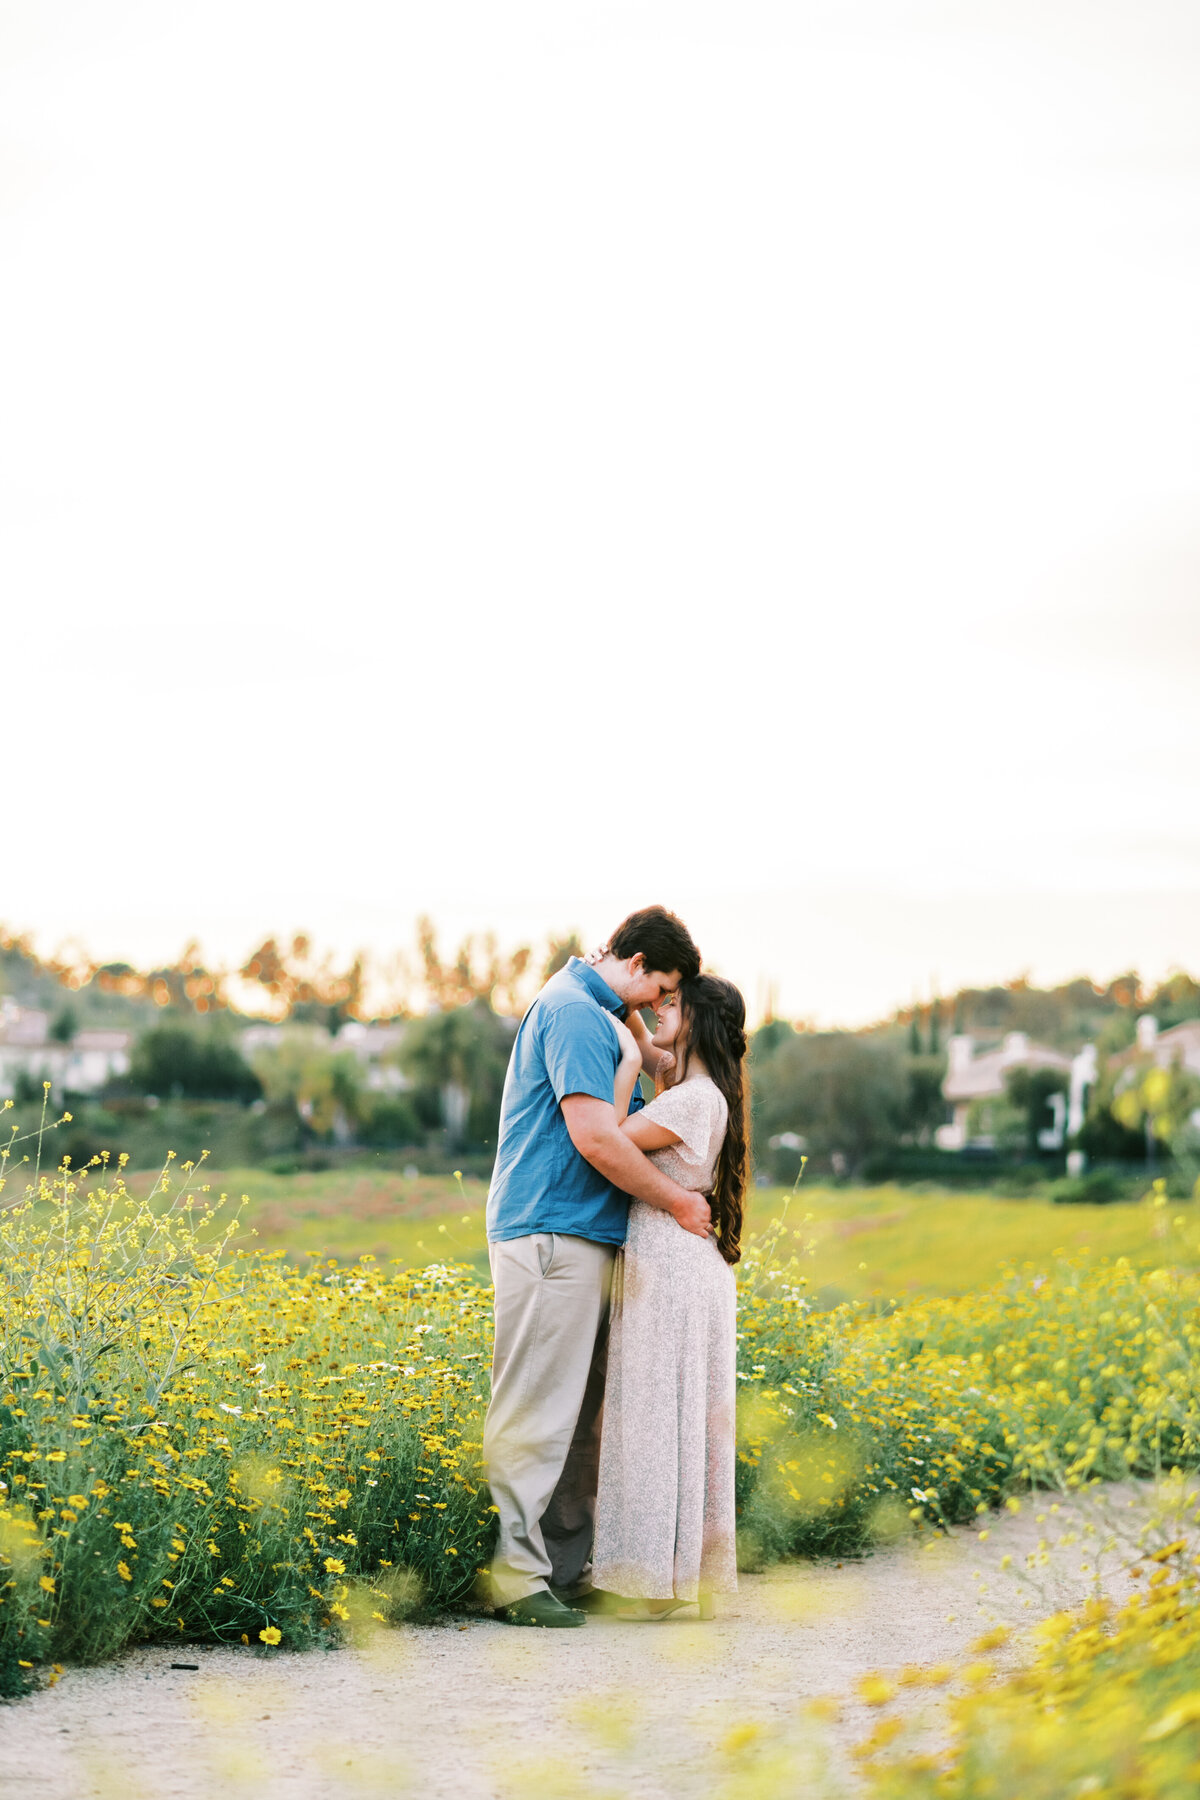 Kyle + Brooke Enagement 4.26.20-139